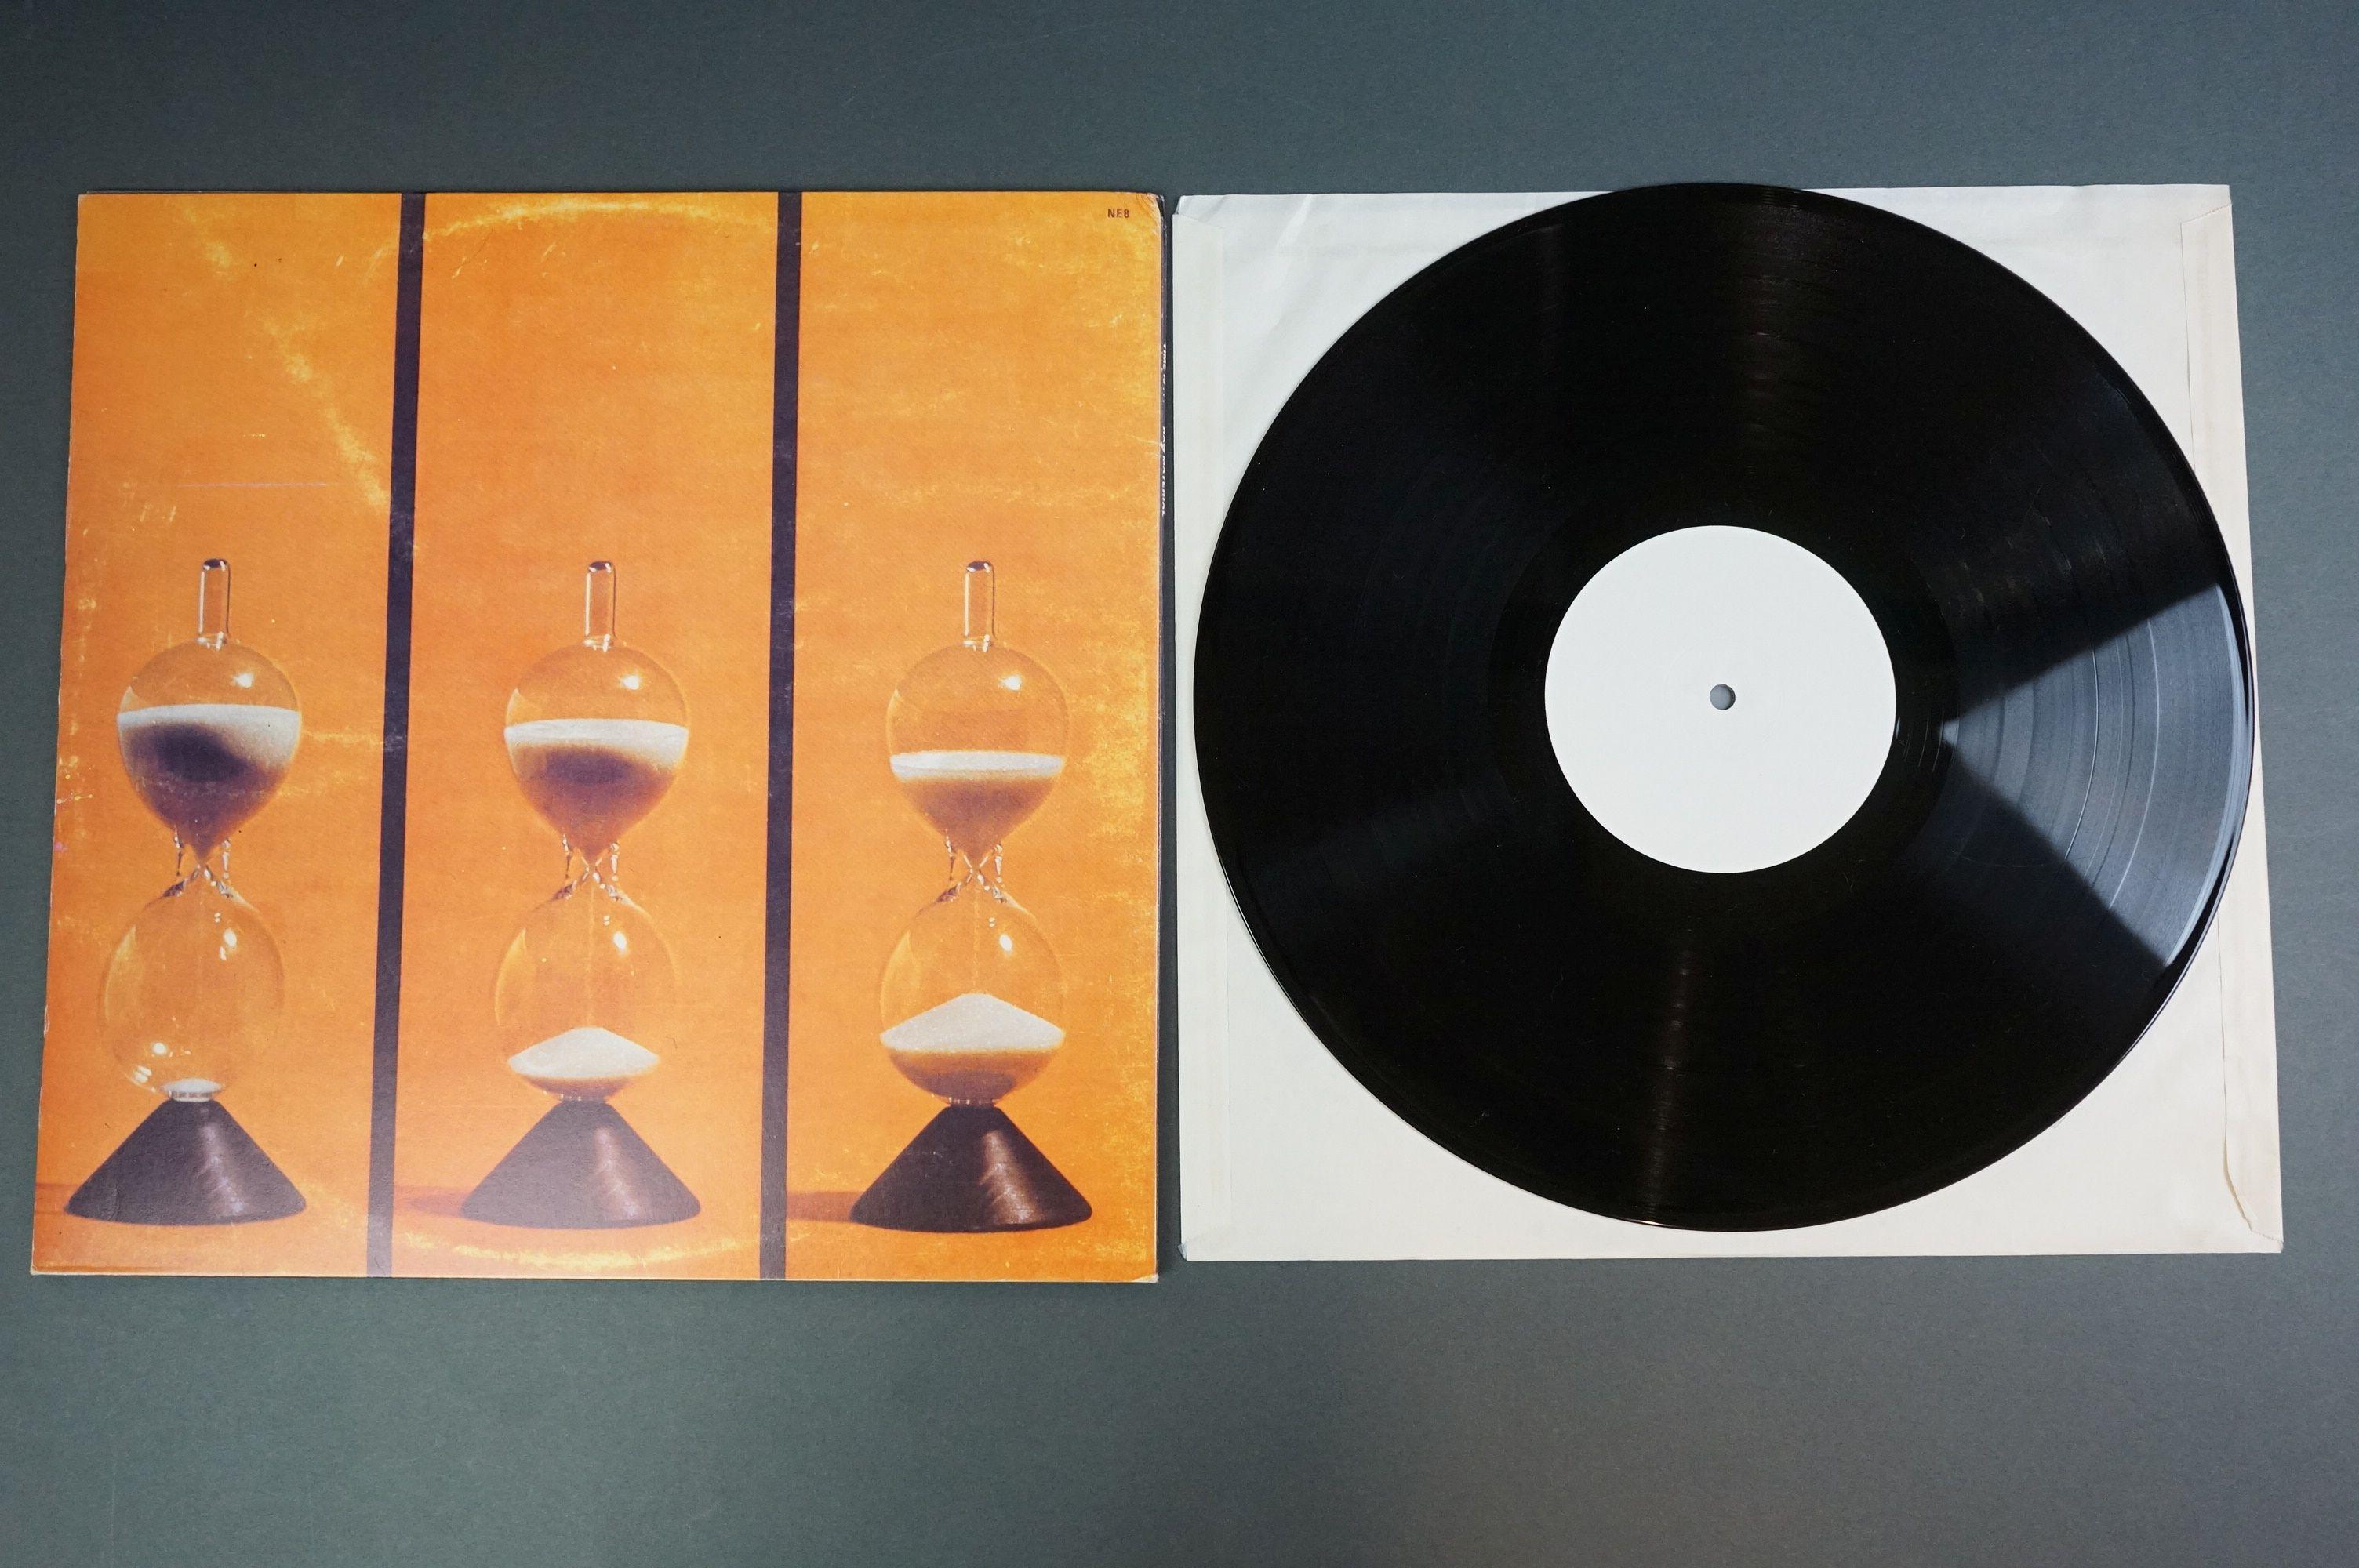 Vinyl - Two unofficial Raw Materials release LPs to include Time Is (NE8) and self titled (Z1006), - Image 3 of 6